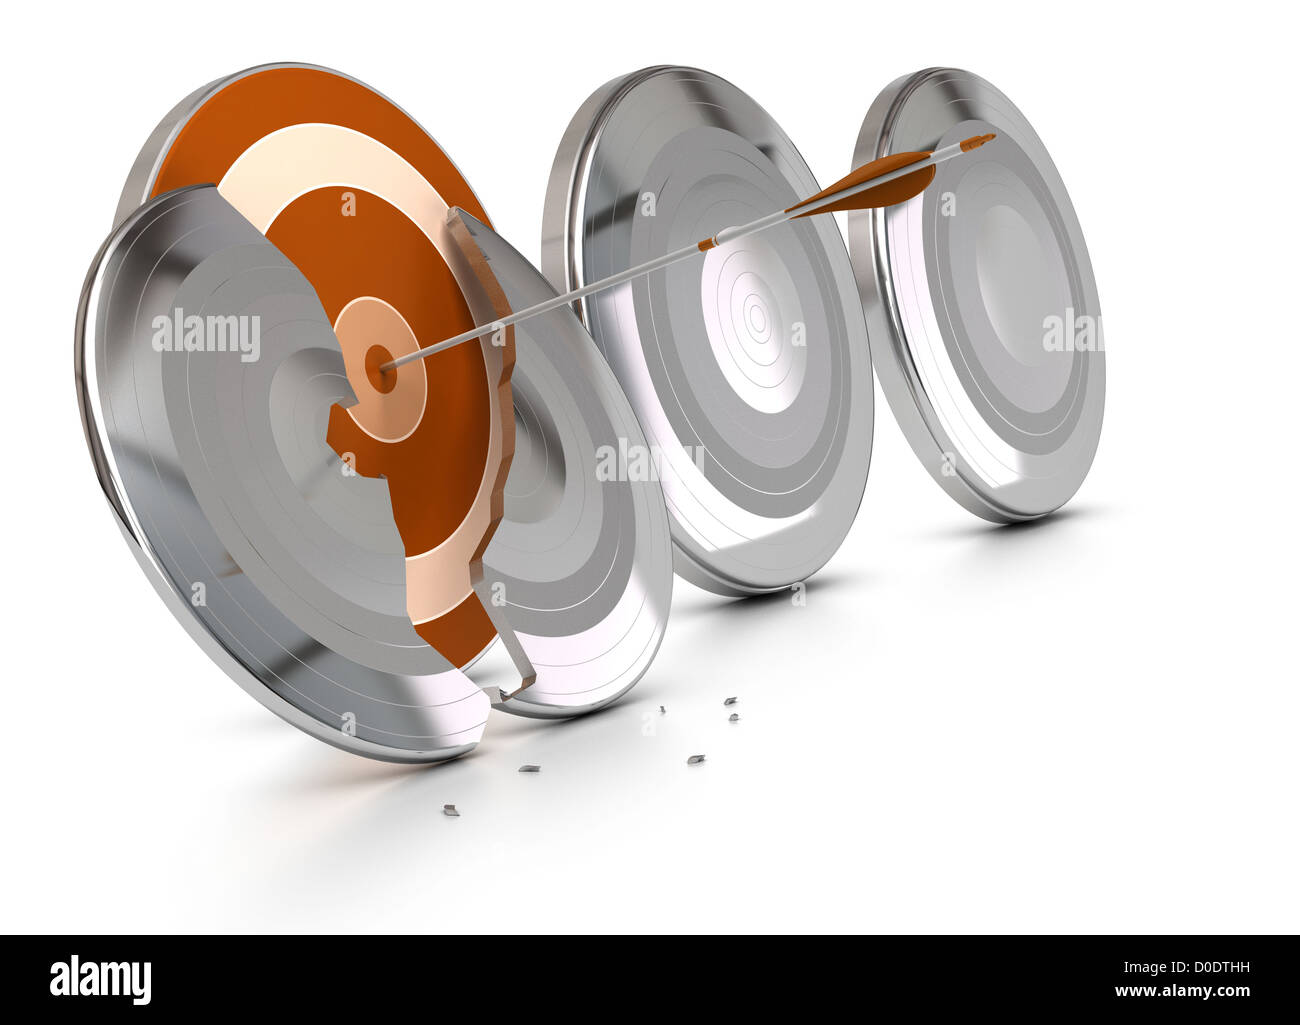 orange target protected by metal armors, one of the metal armor is broken by an arrow, the others are entire, image - Stock Image